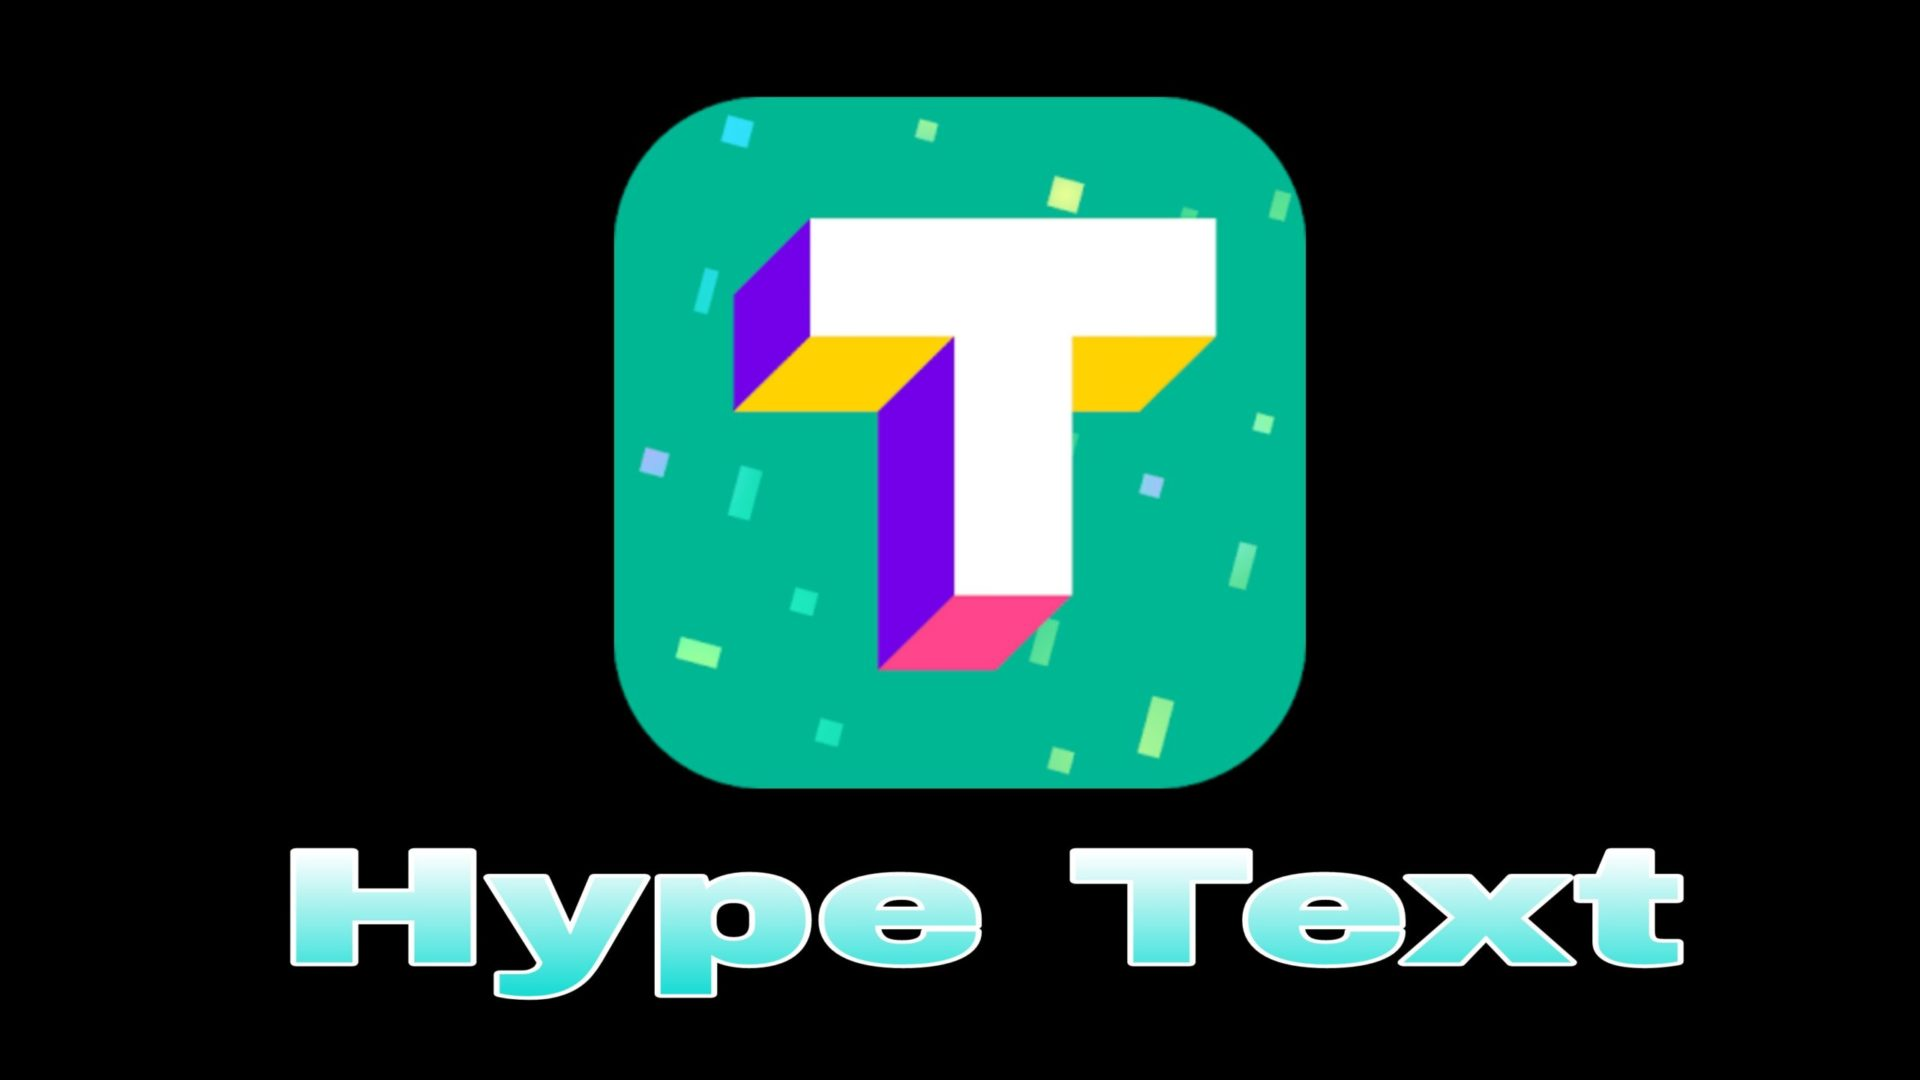 Hype Text MOD APK v4.7.2 Download (VIP/Pro Unlocked) For Android